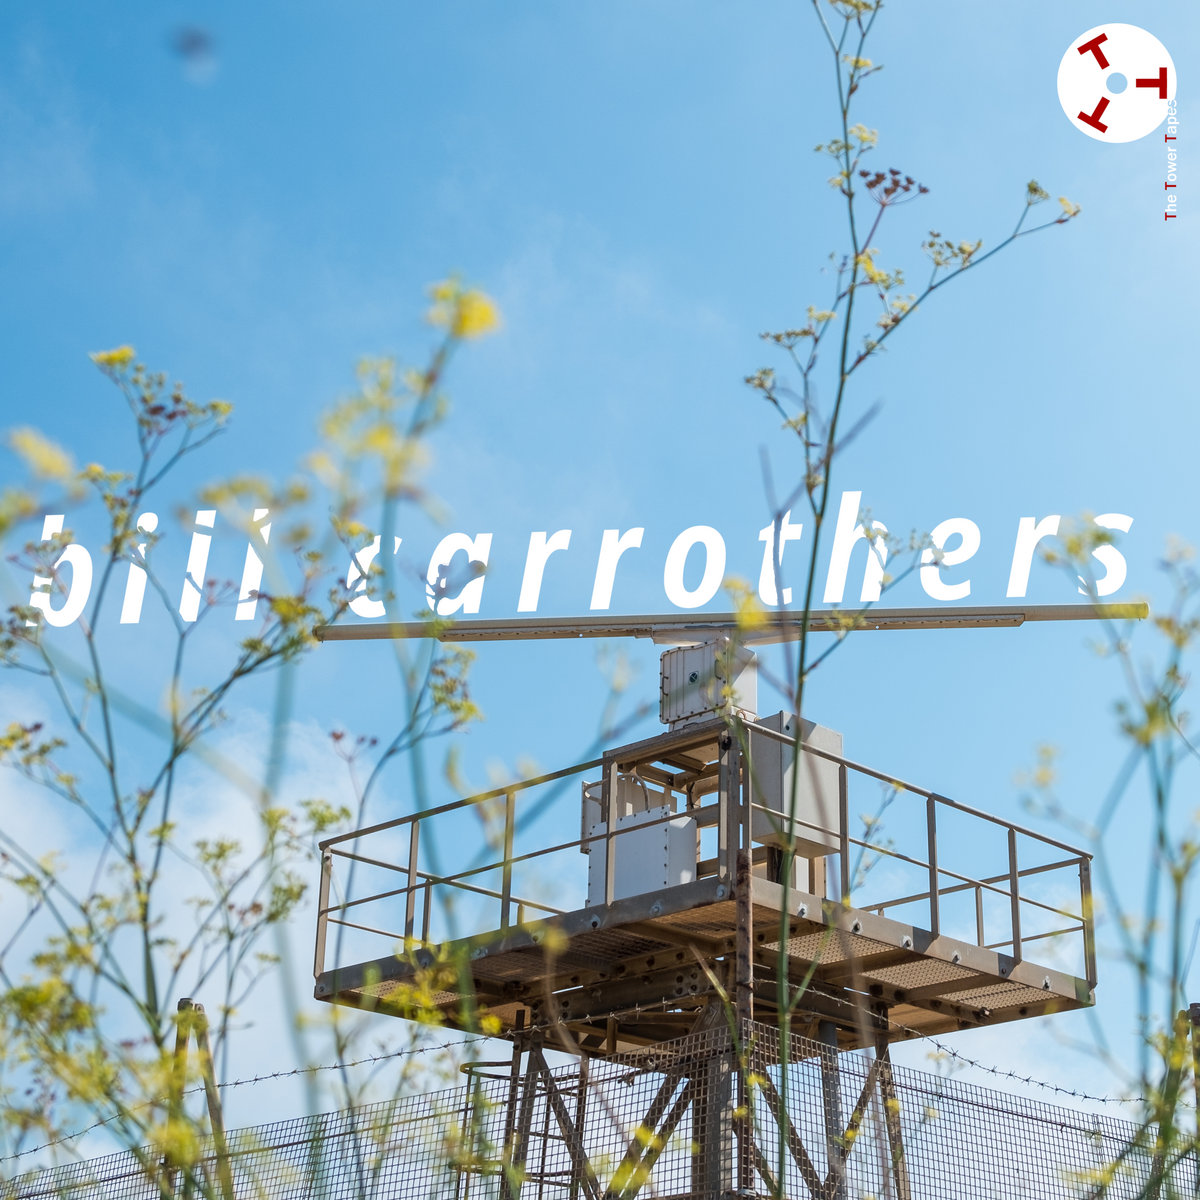 BILL CARROTHERS - The Tower Tapes #7 : Bill Carrothers cover